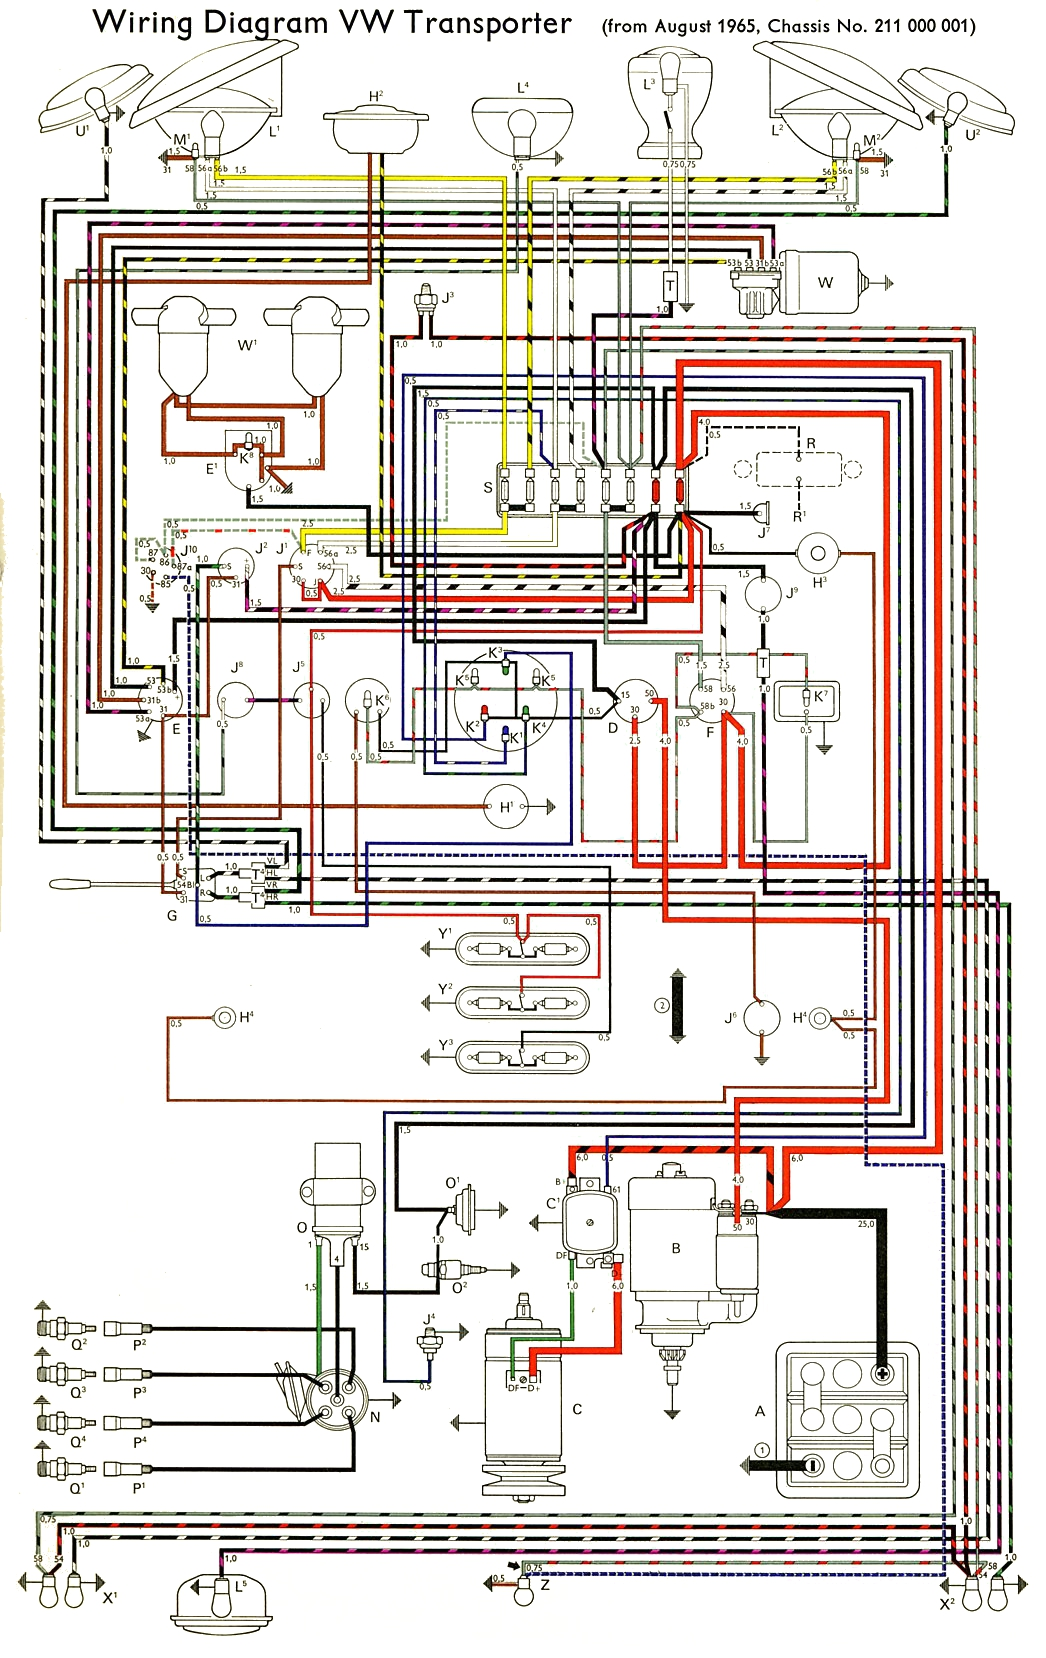 bus_66 electrical wiring diagrams beetle 1971 electrical wiring vw t5 fog light wiring diagram at gsmx.co